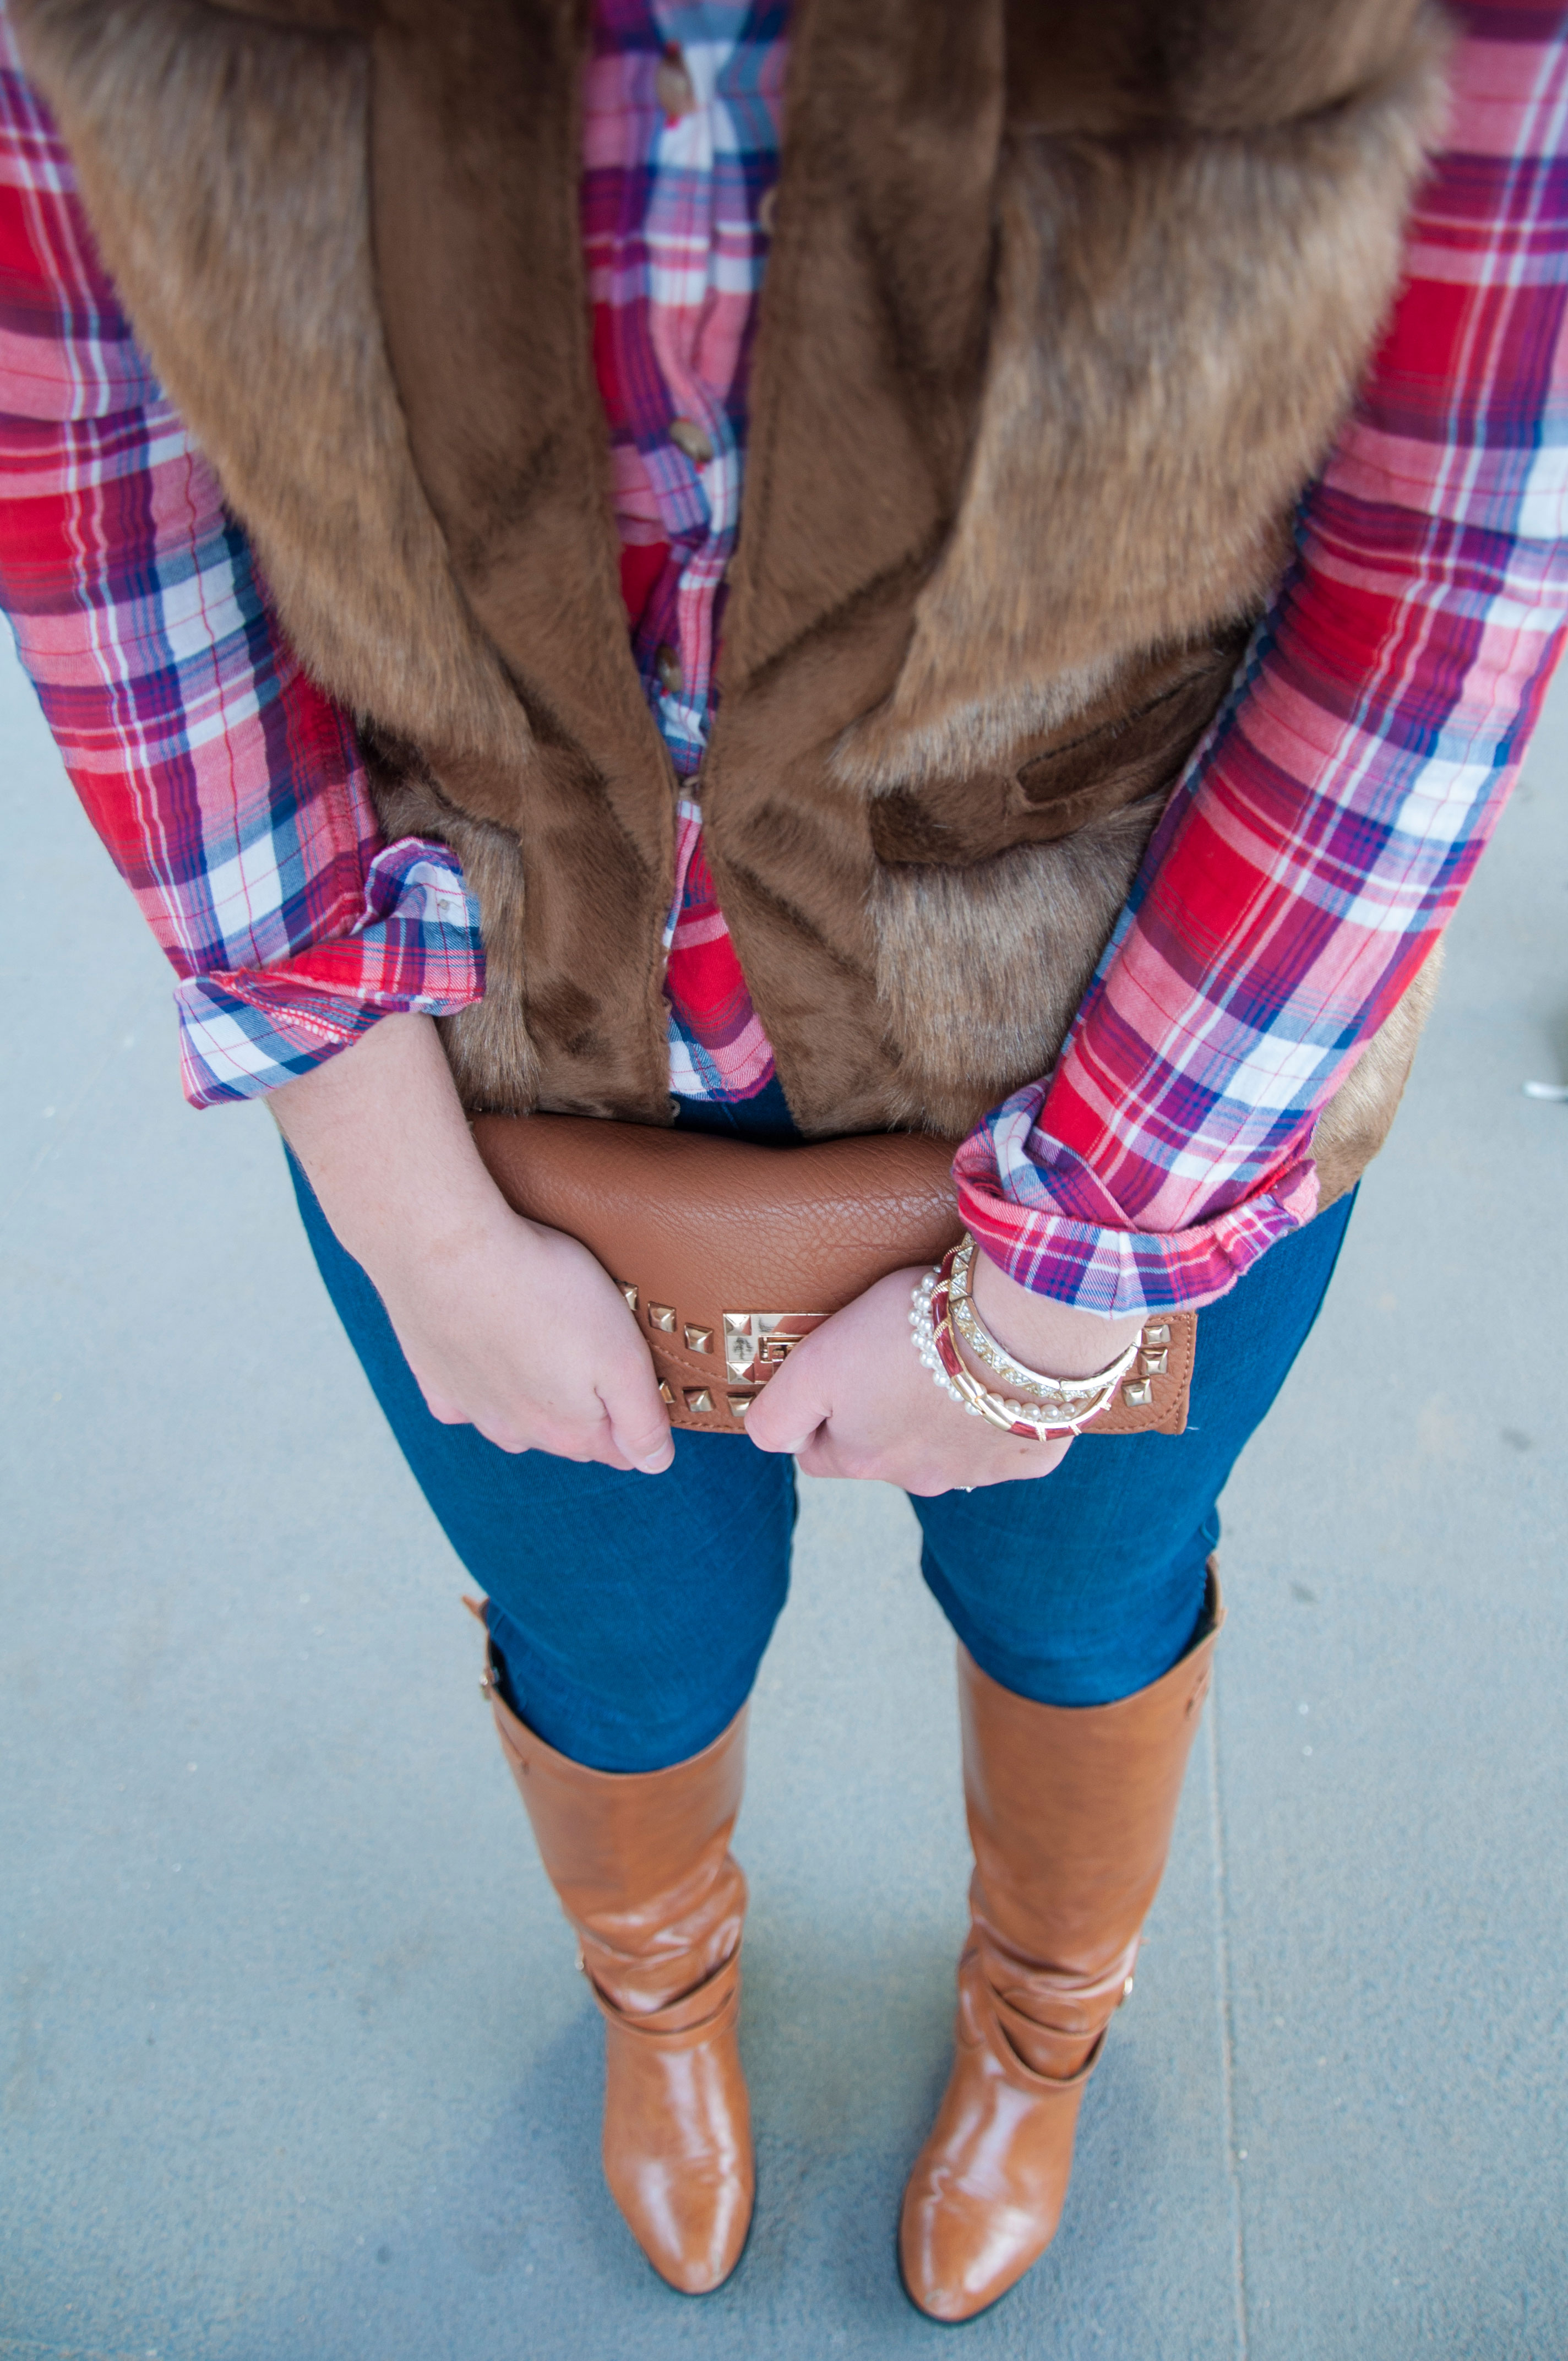 Fur vest, plaid shirt, and boots